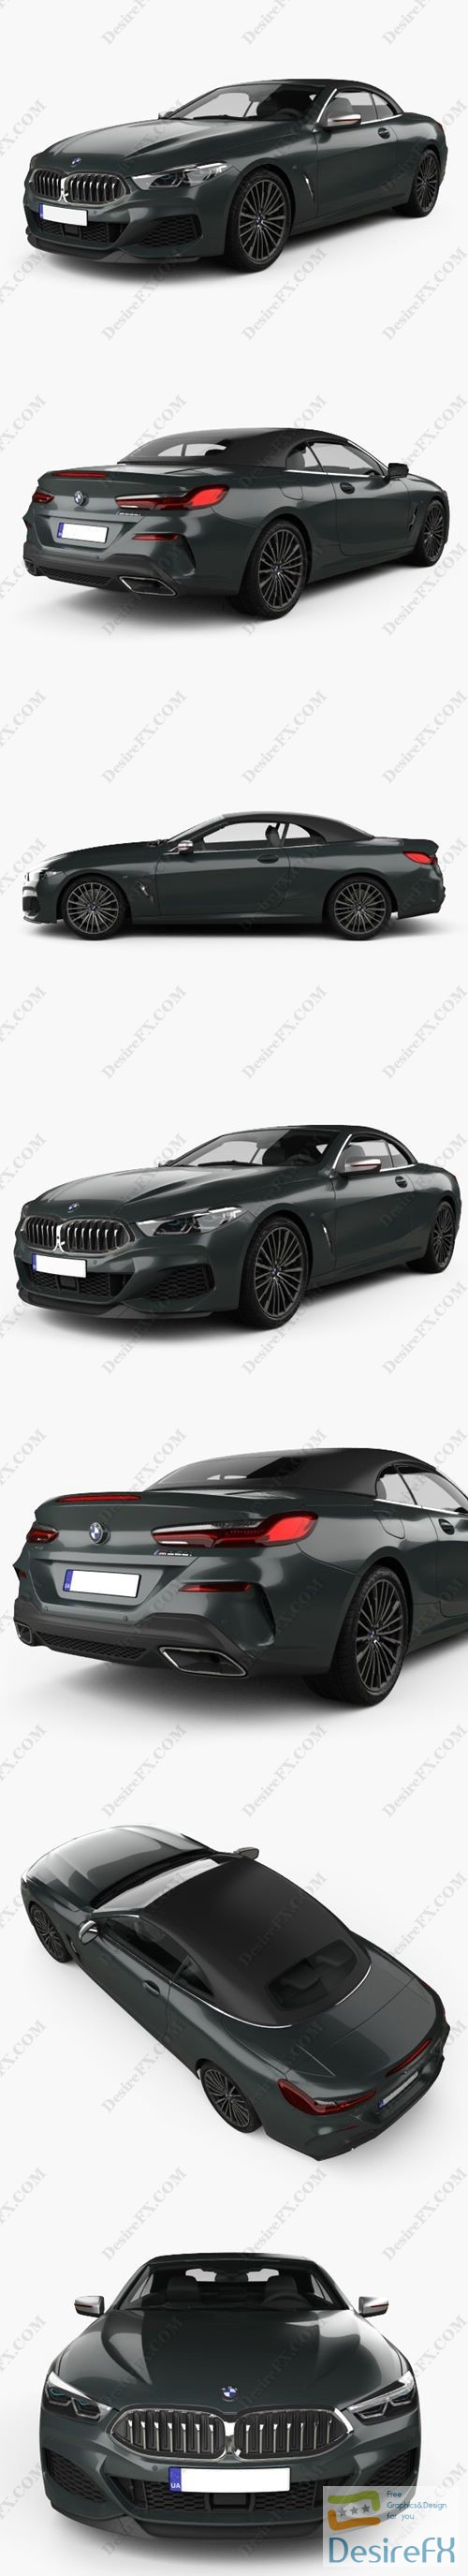 BMW 8-Series G14 convertible M850i 2019 3D Model